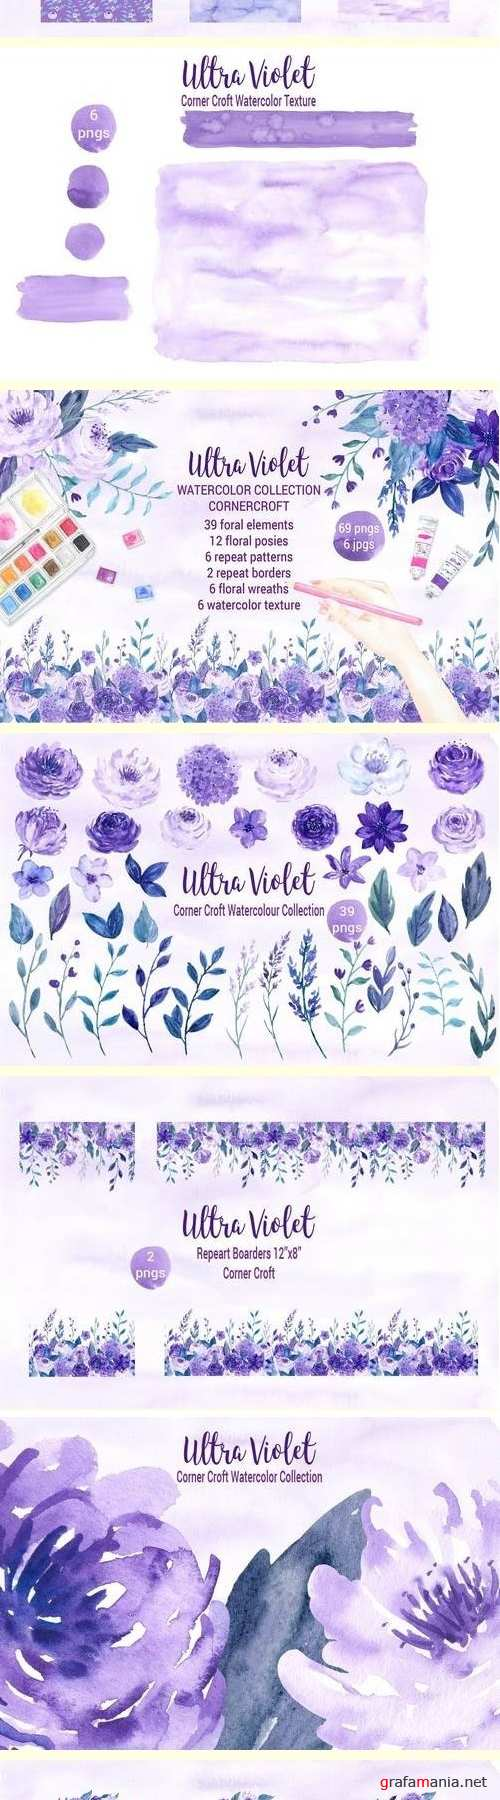 Watercolor Ultra Violet Collection - 2225261